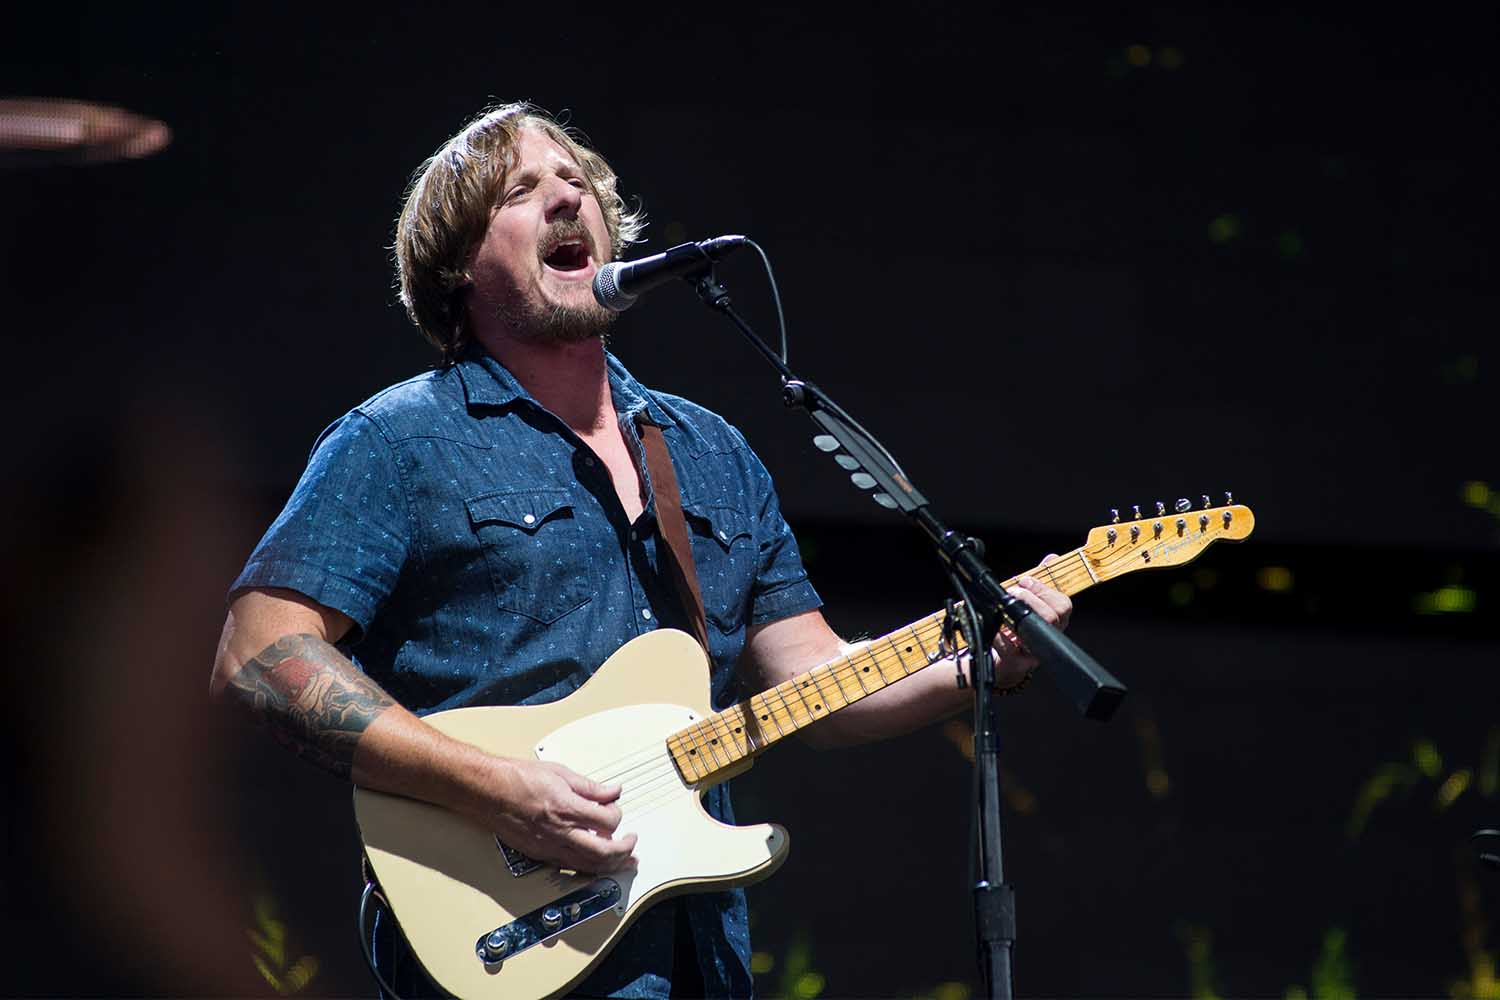 Sturgill Simpson performs at Farm Aid at the XFINITY Theatre in Hartford, Connecticut on September 22, 2018. (Photo by Ebet Roberts/Redferns)